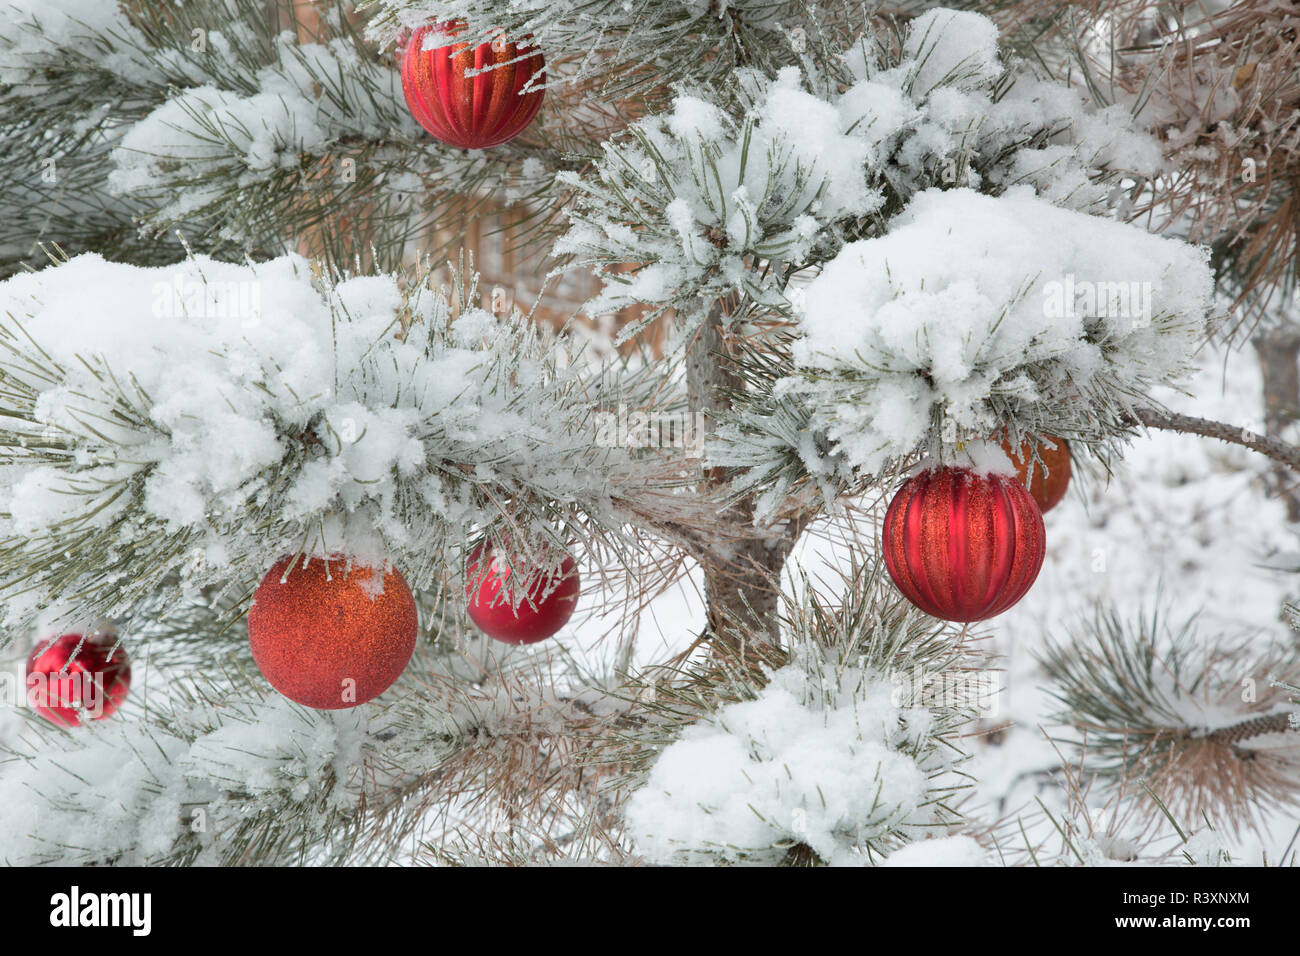 USA, Colorado, Woodland Park. Fresh snow and red ornaments on tree. Credit as: Don Grall / Jaynes Gallery / DanitaDelimont. com - Stock Image